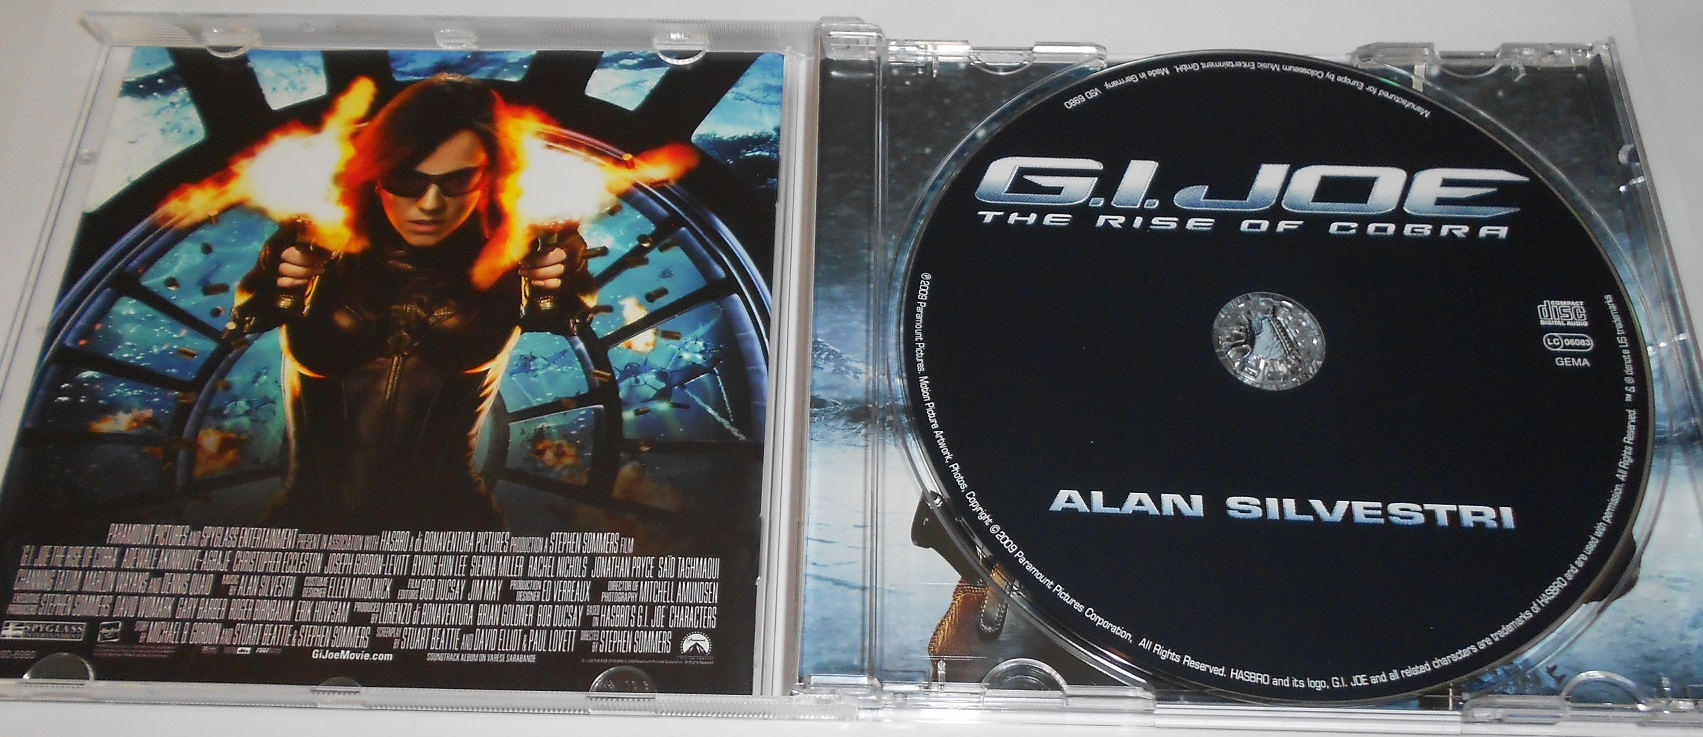 Alan Silvestri ‎– G.I. Joe: The Rise Of Cobra (Score From The Motion Picture)